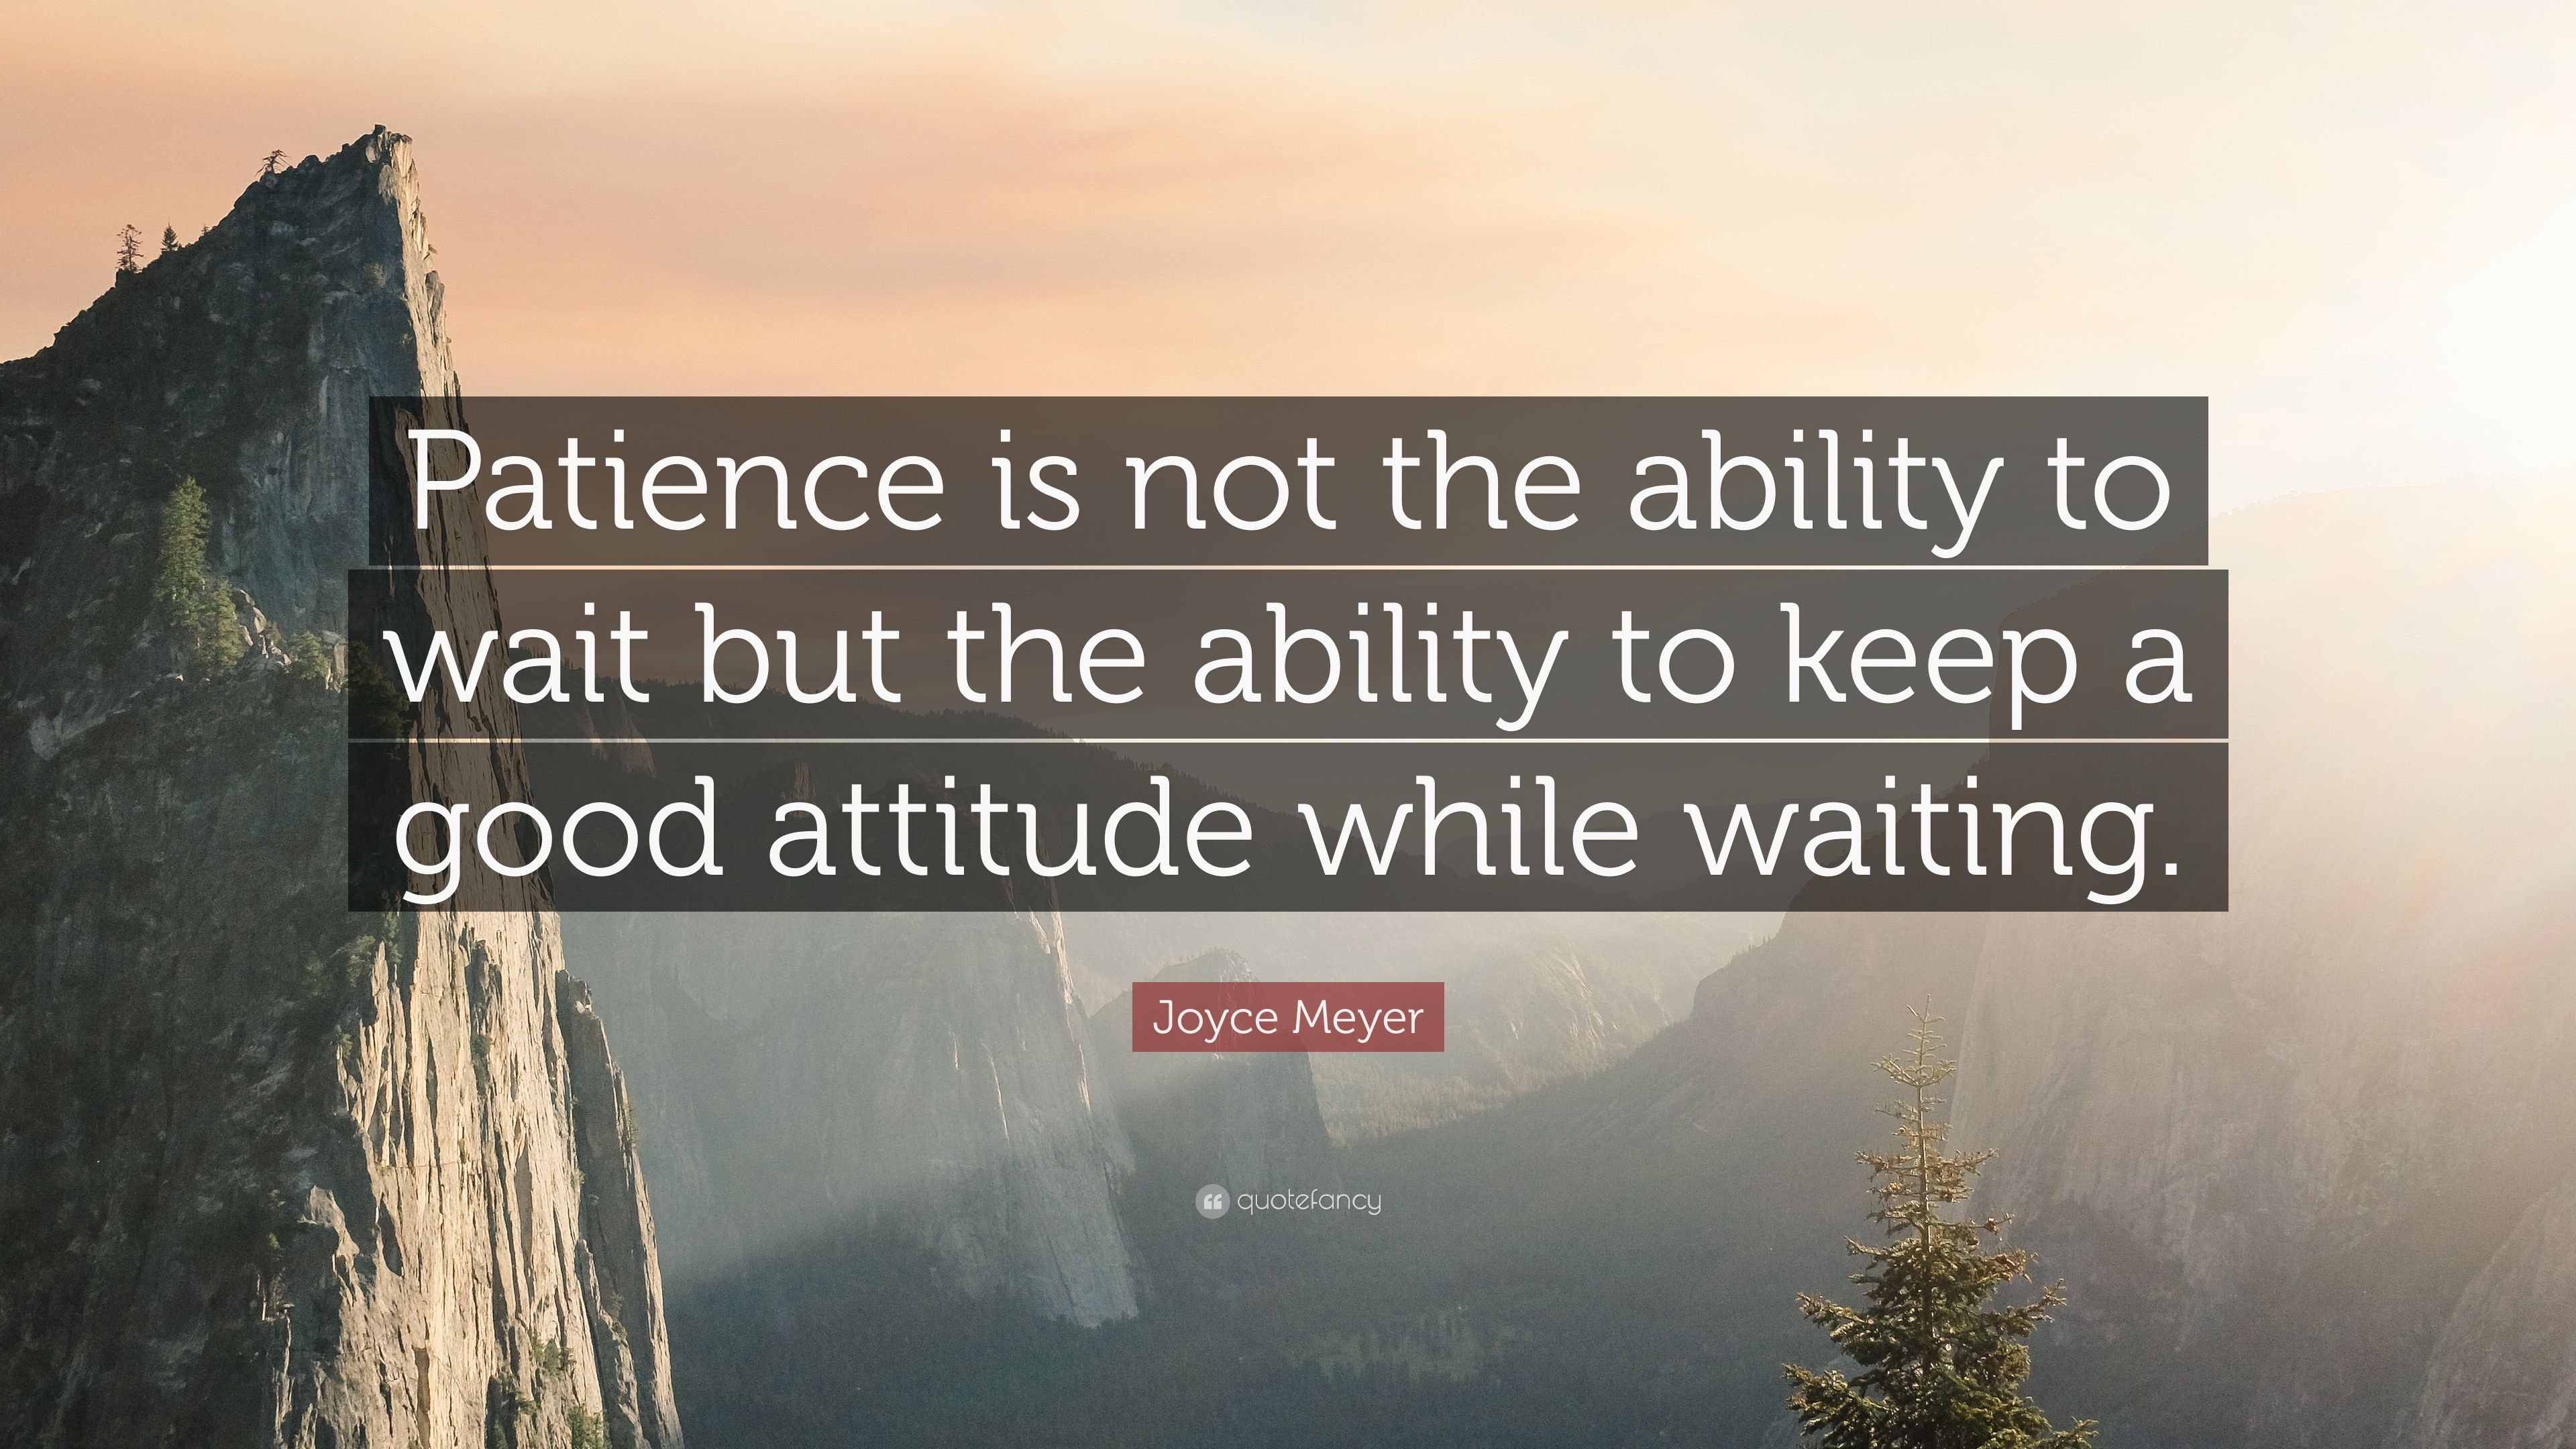 17749-Joyce-Meyer-Quote-Patience-is-not-the-ability-to-wait-but-the